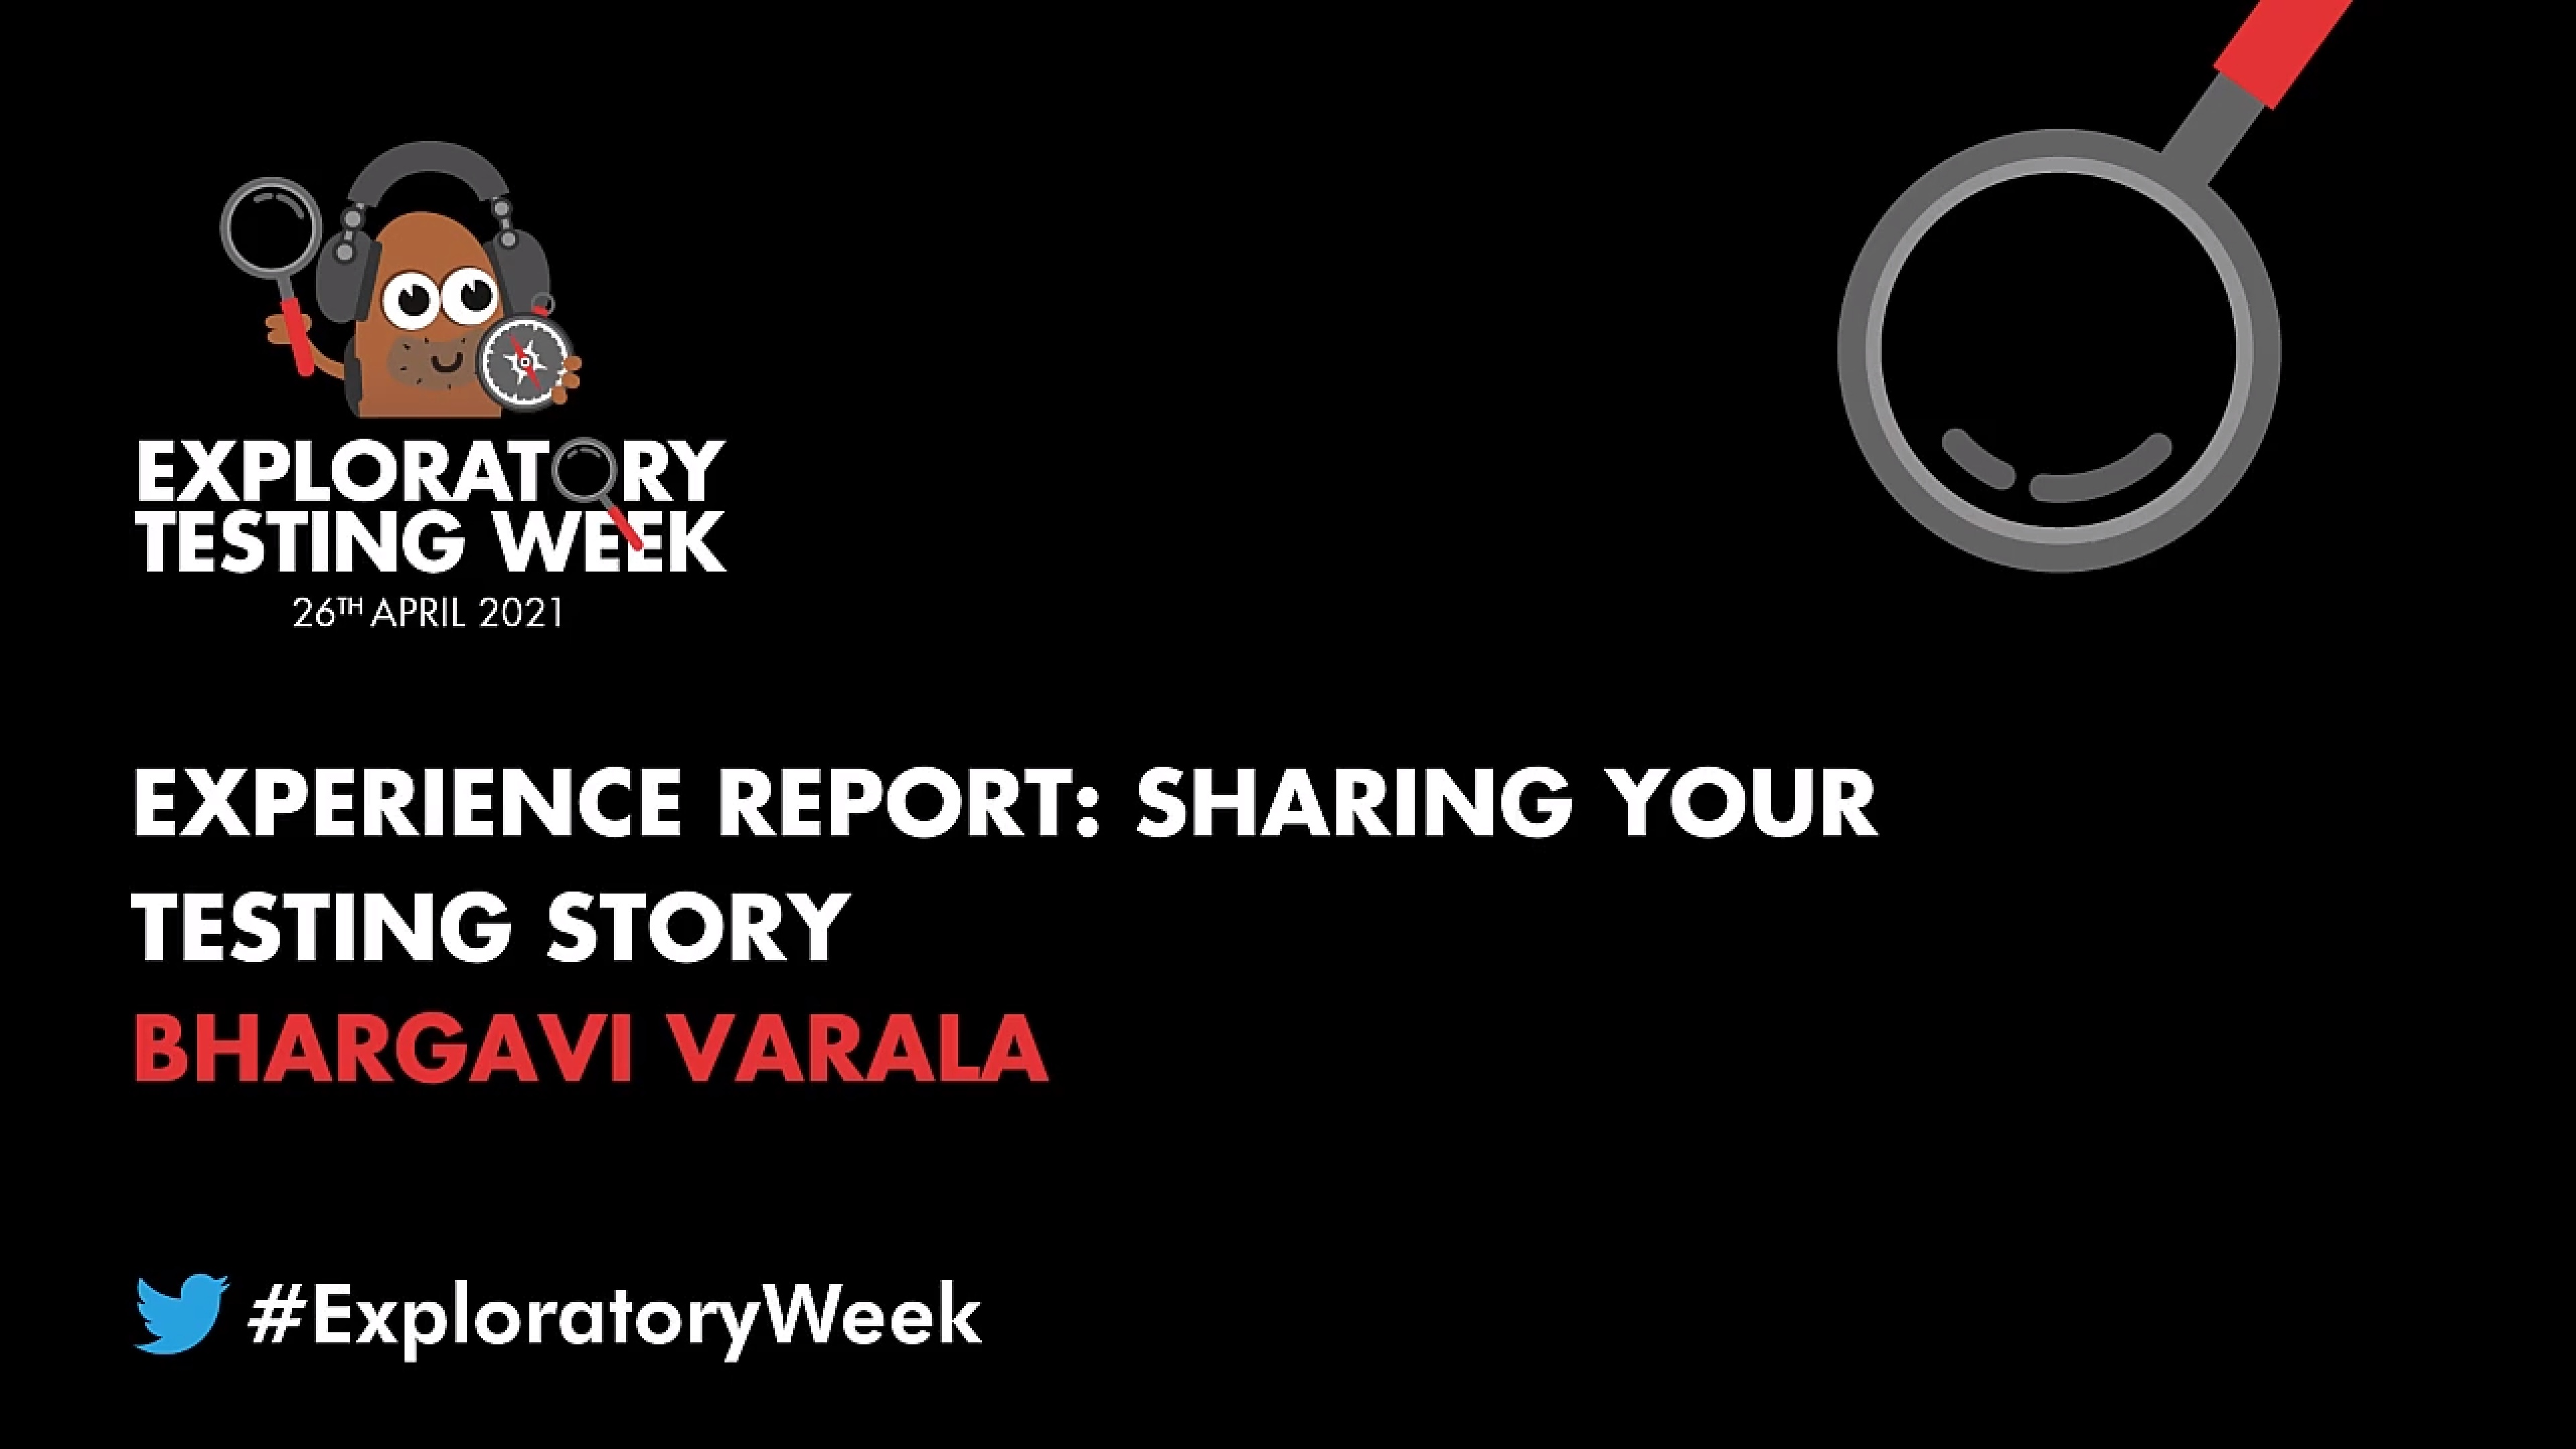 Experience Report: Sharing Your Testing Story with Bhargavi Varala